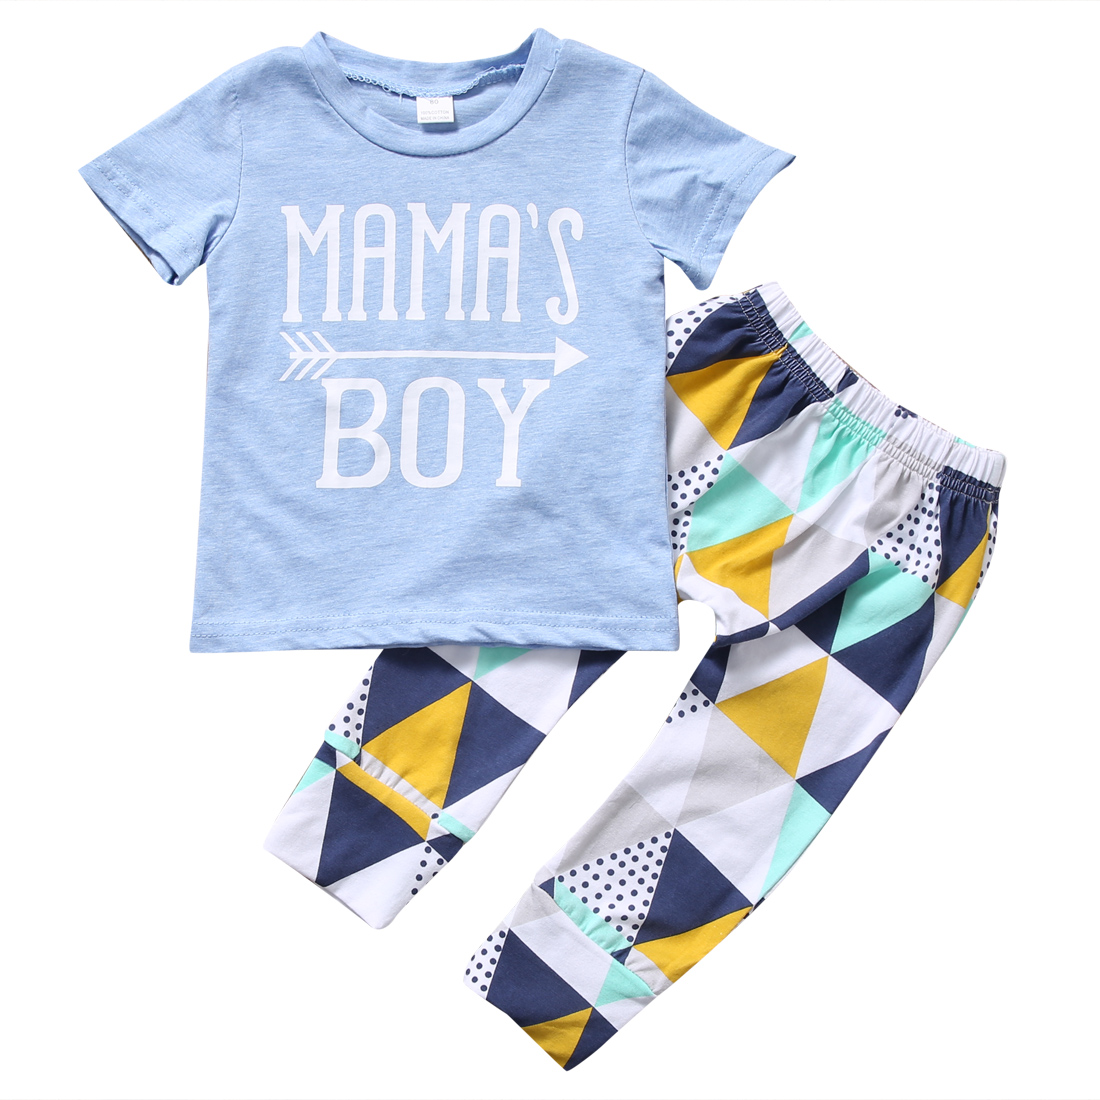 1d7b54e1 teal baby girl clothes,carters footed pajamas 12 months,polo ralph ...